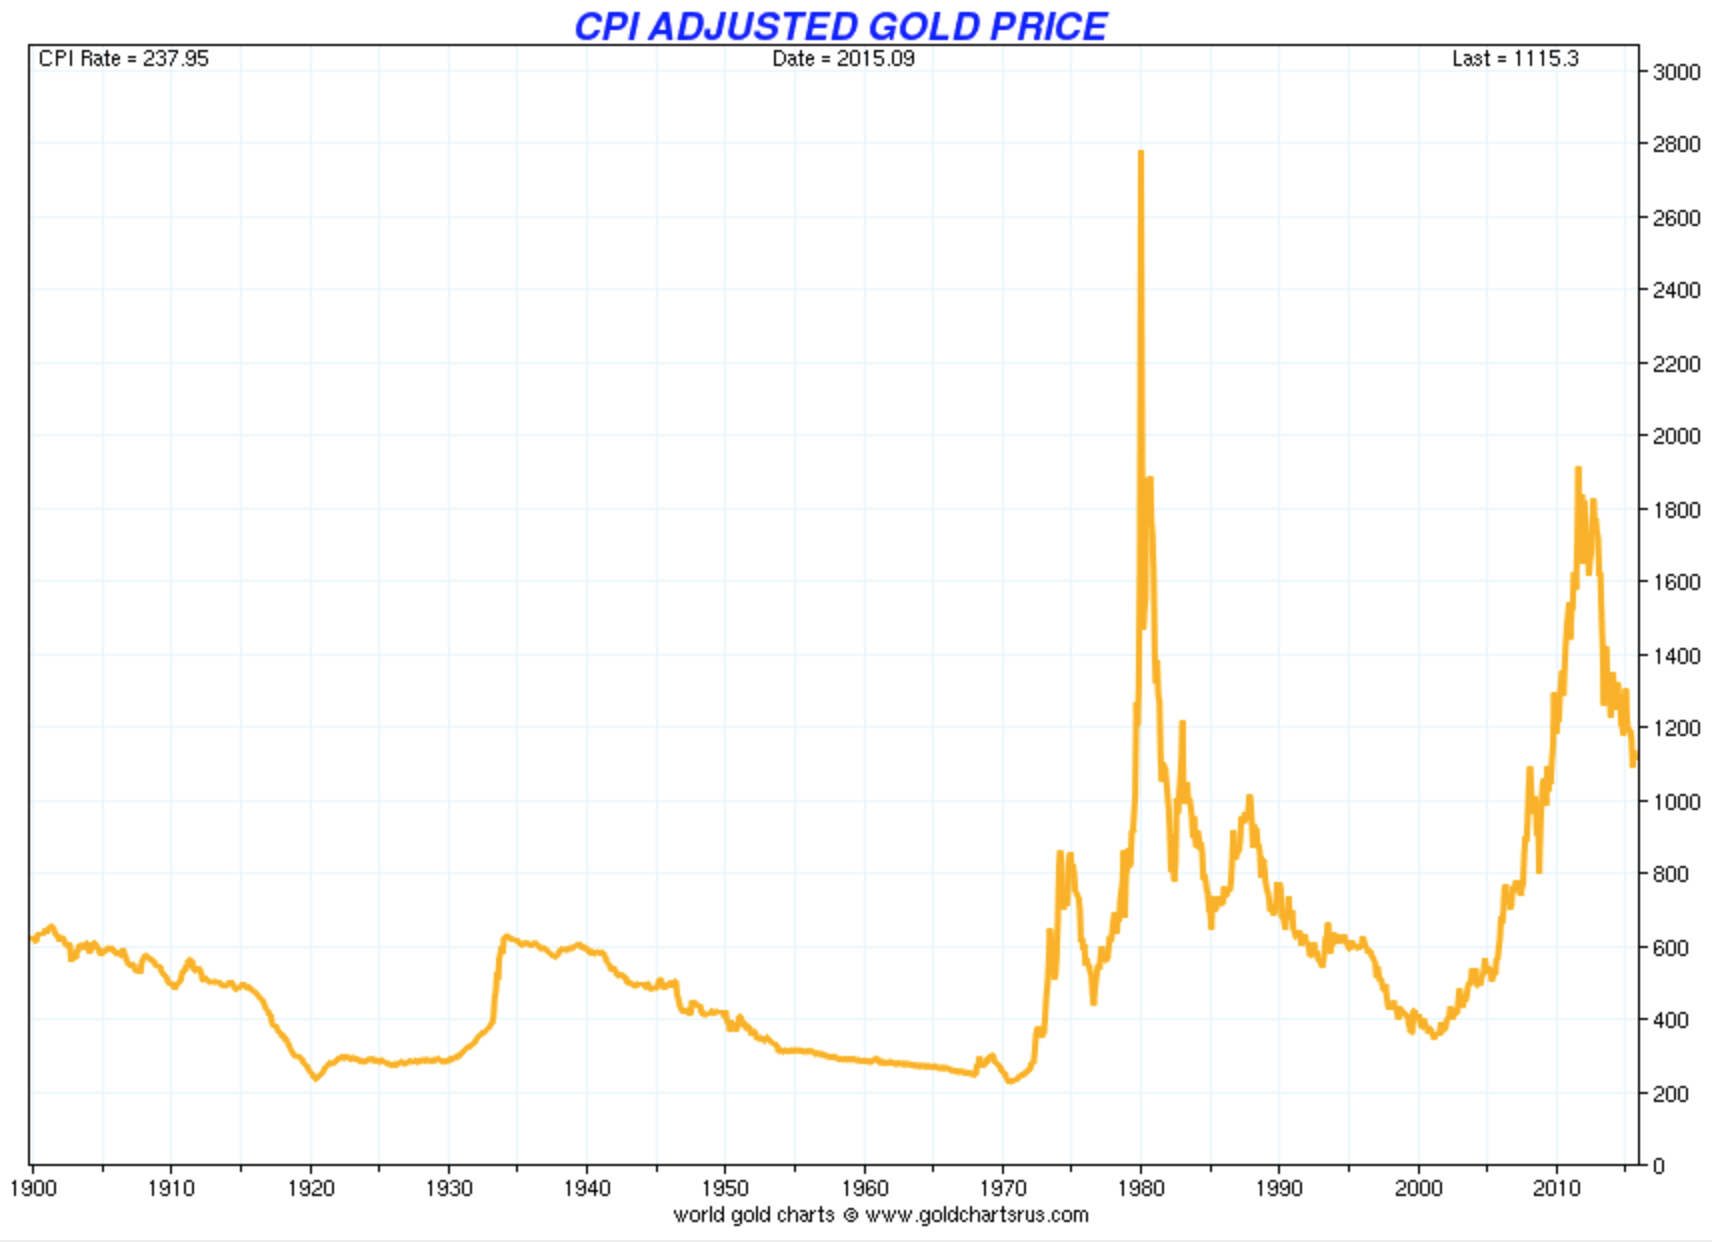 Gold price adjusted by official inflation as calculated since 1980